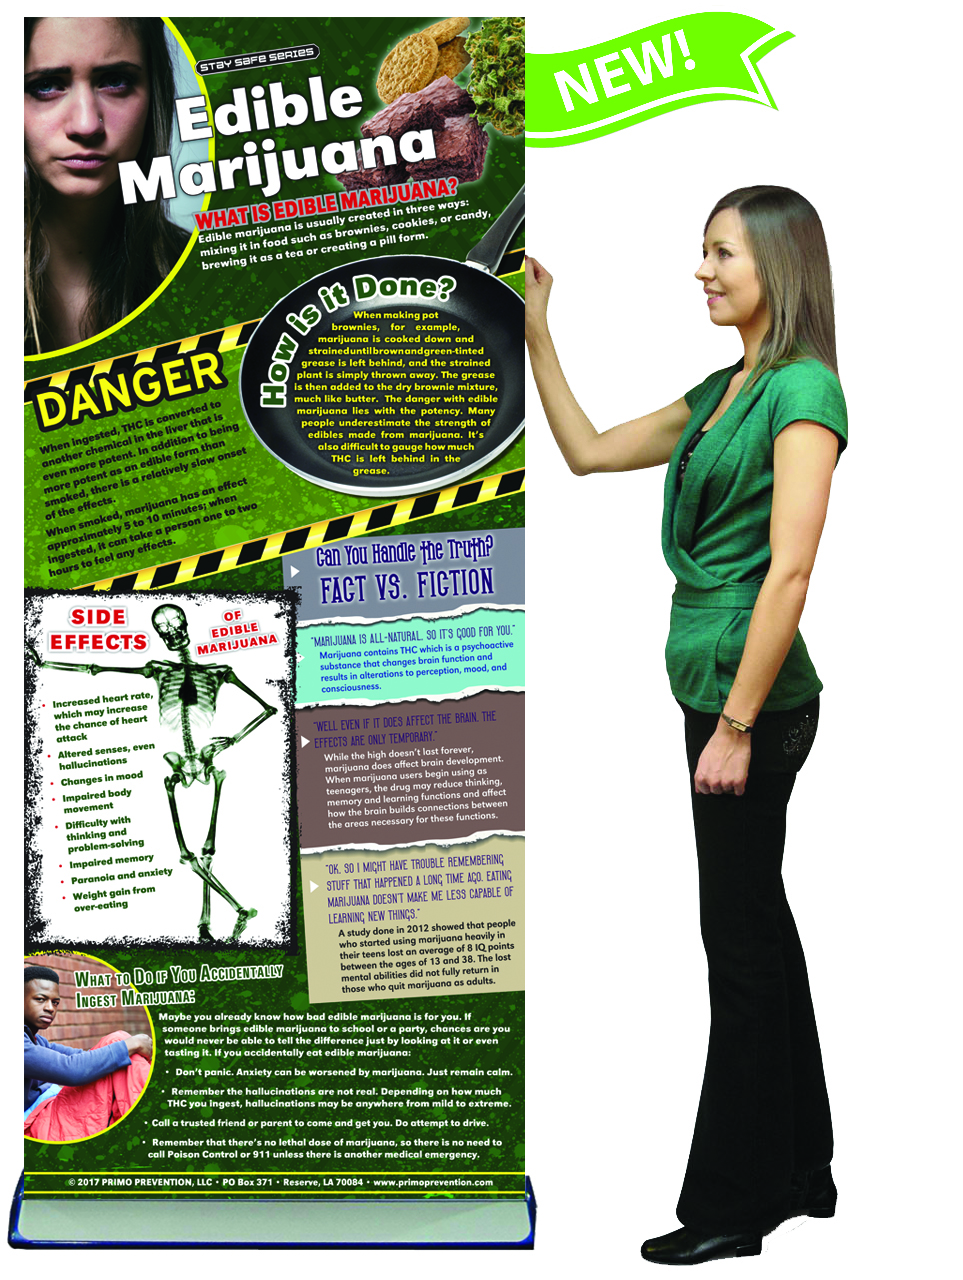 edible-marijuana-banner-girl